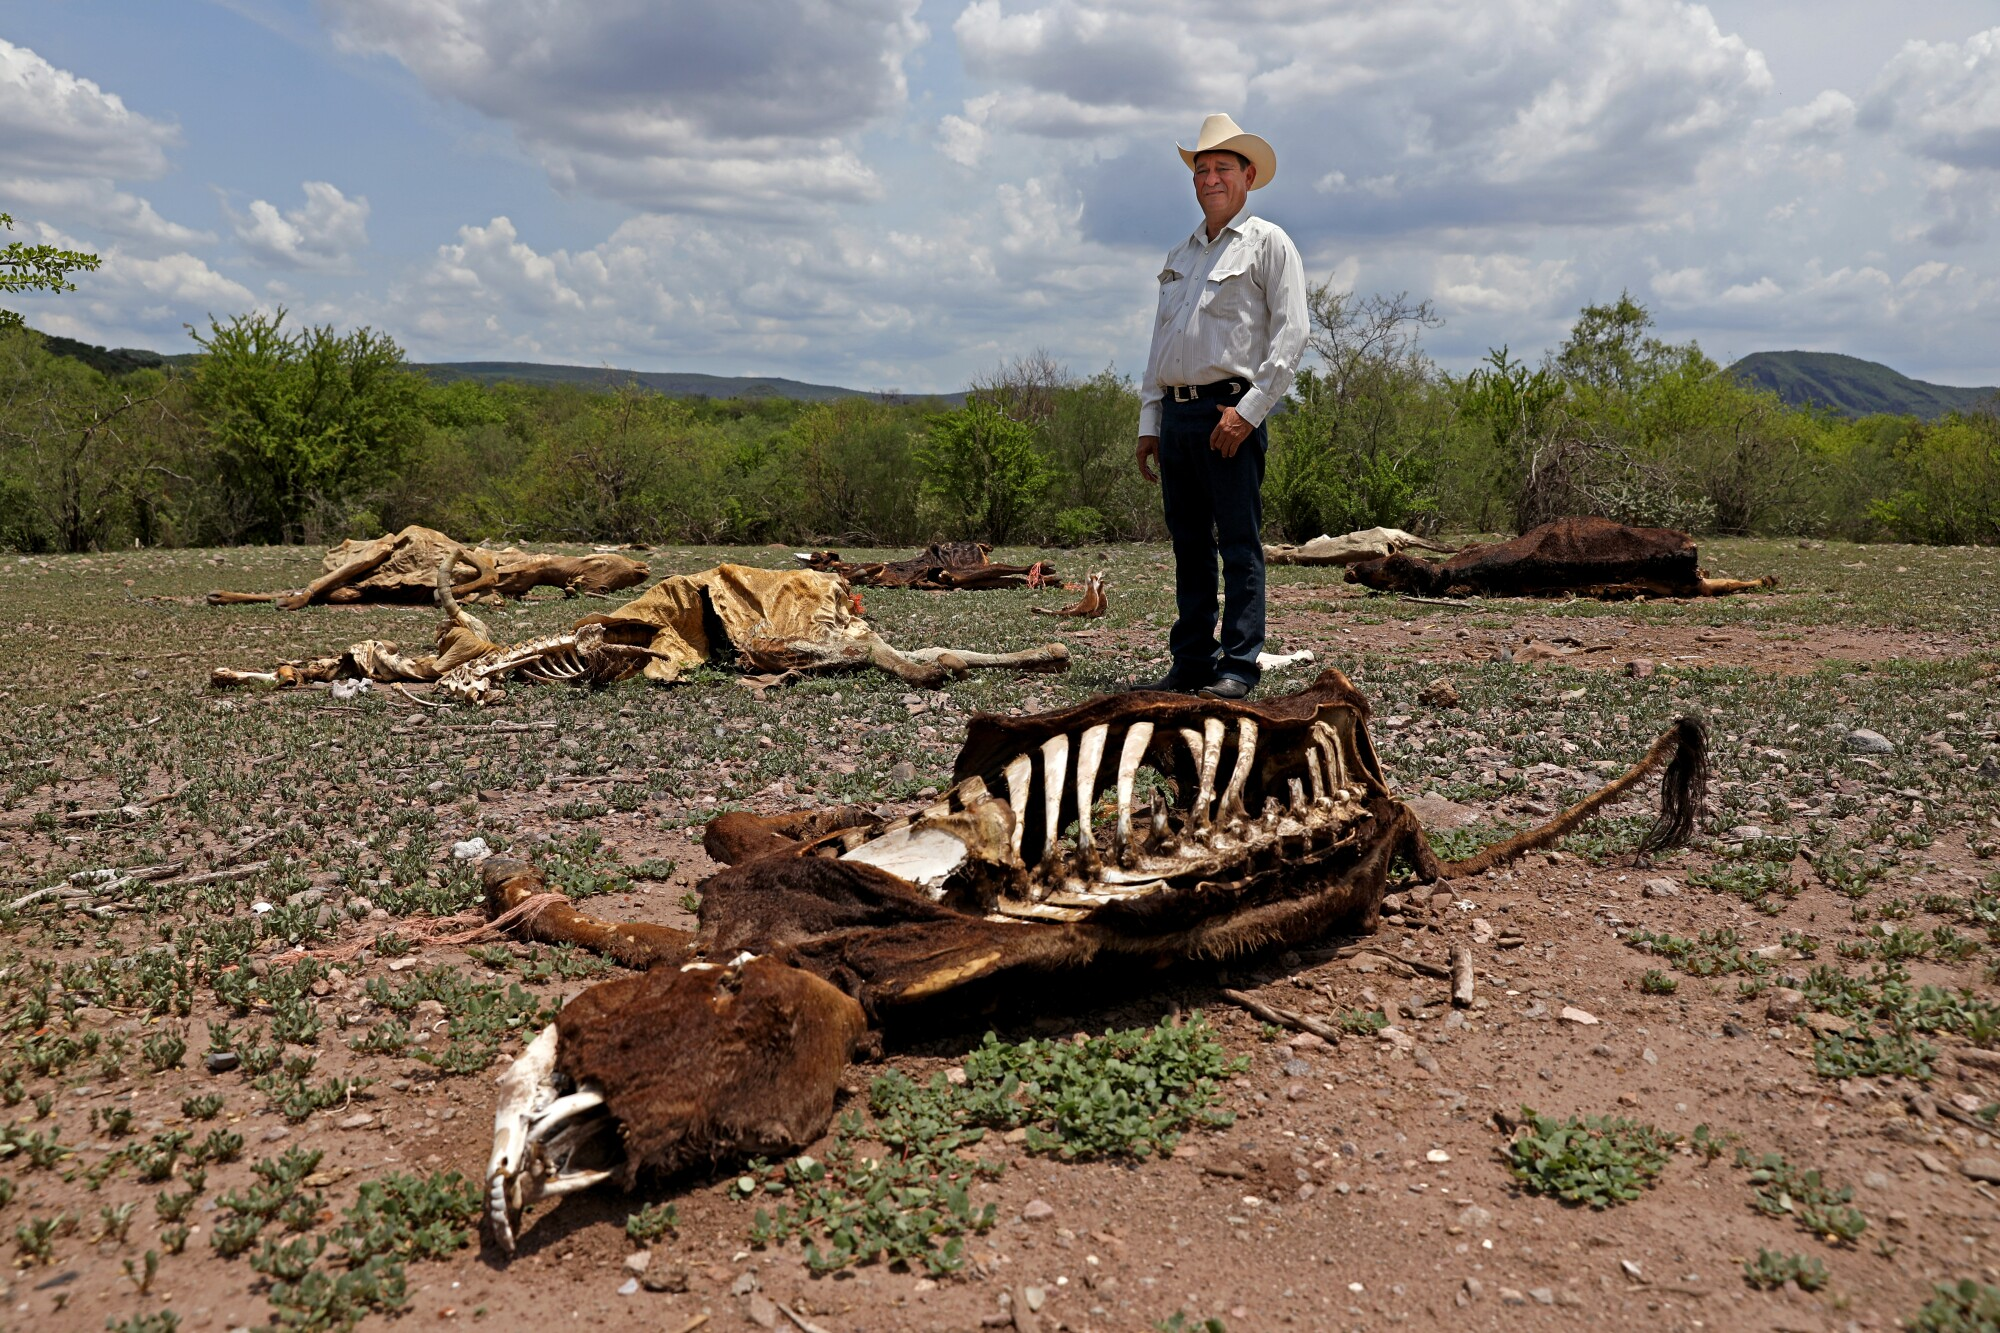 A rancher stands amid a field of cattle carcasses